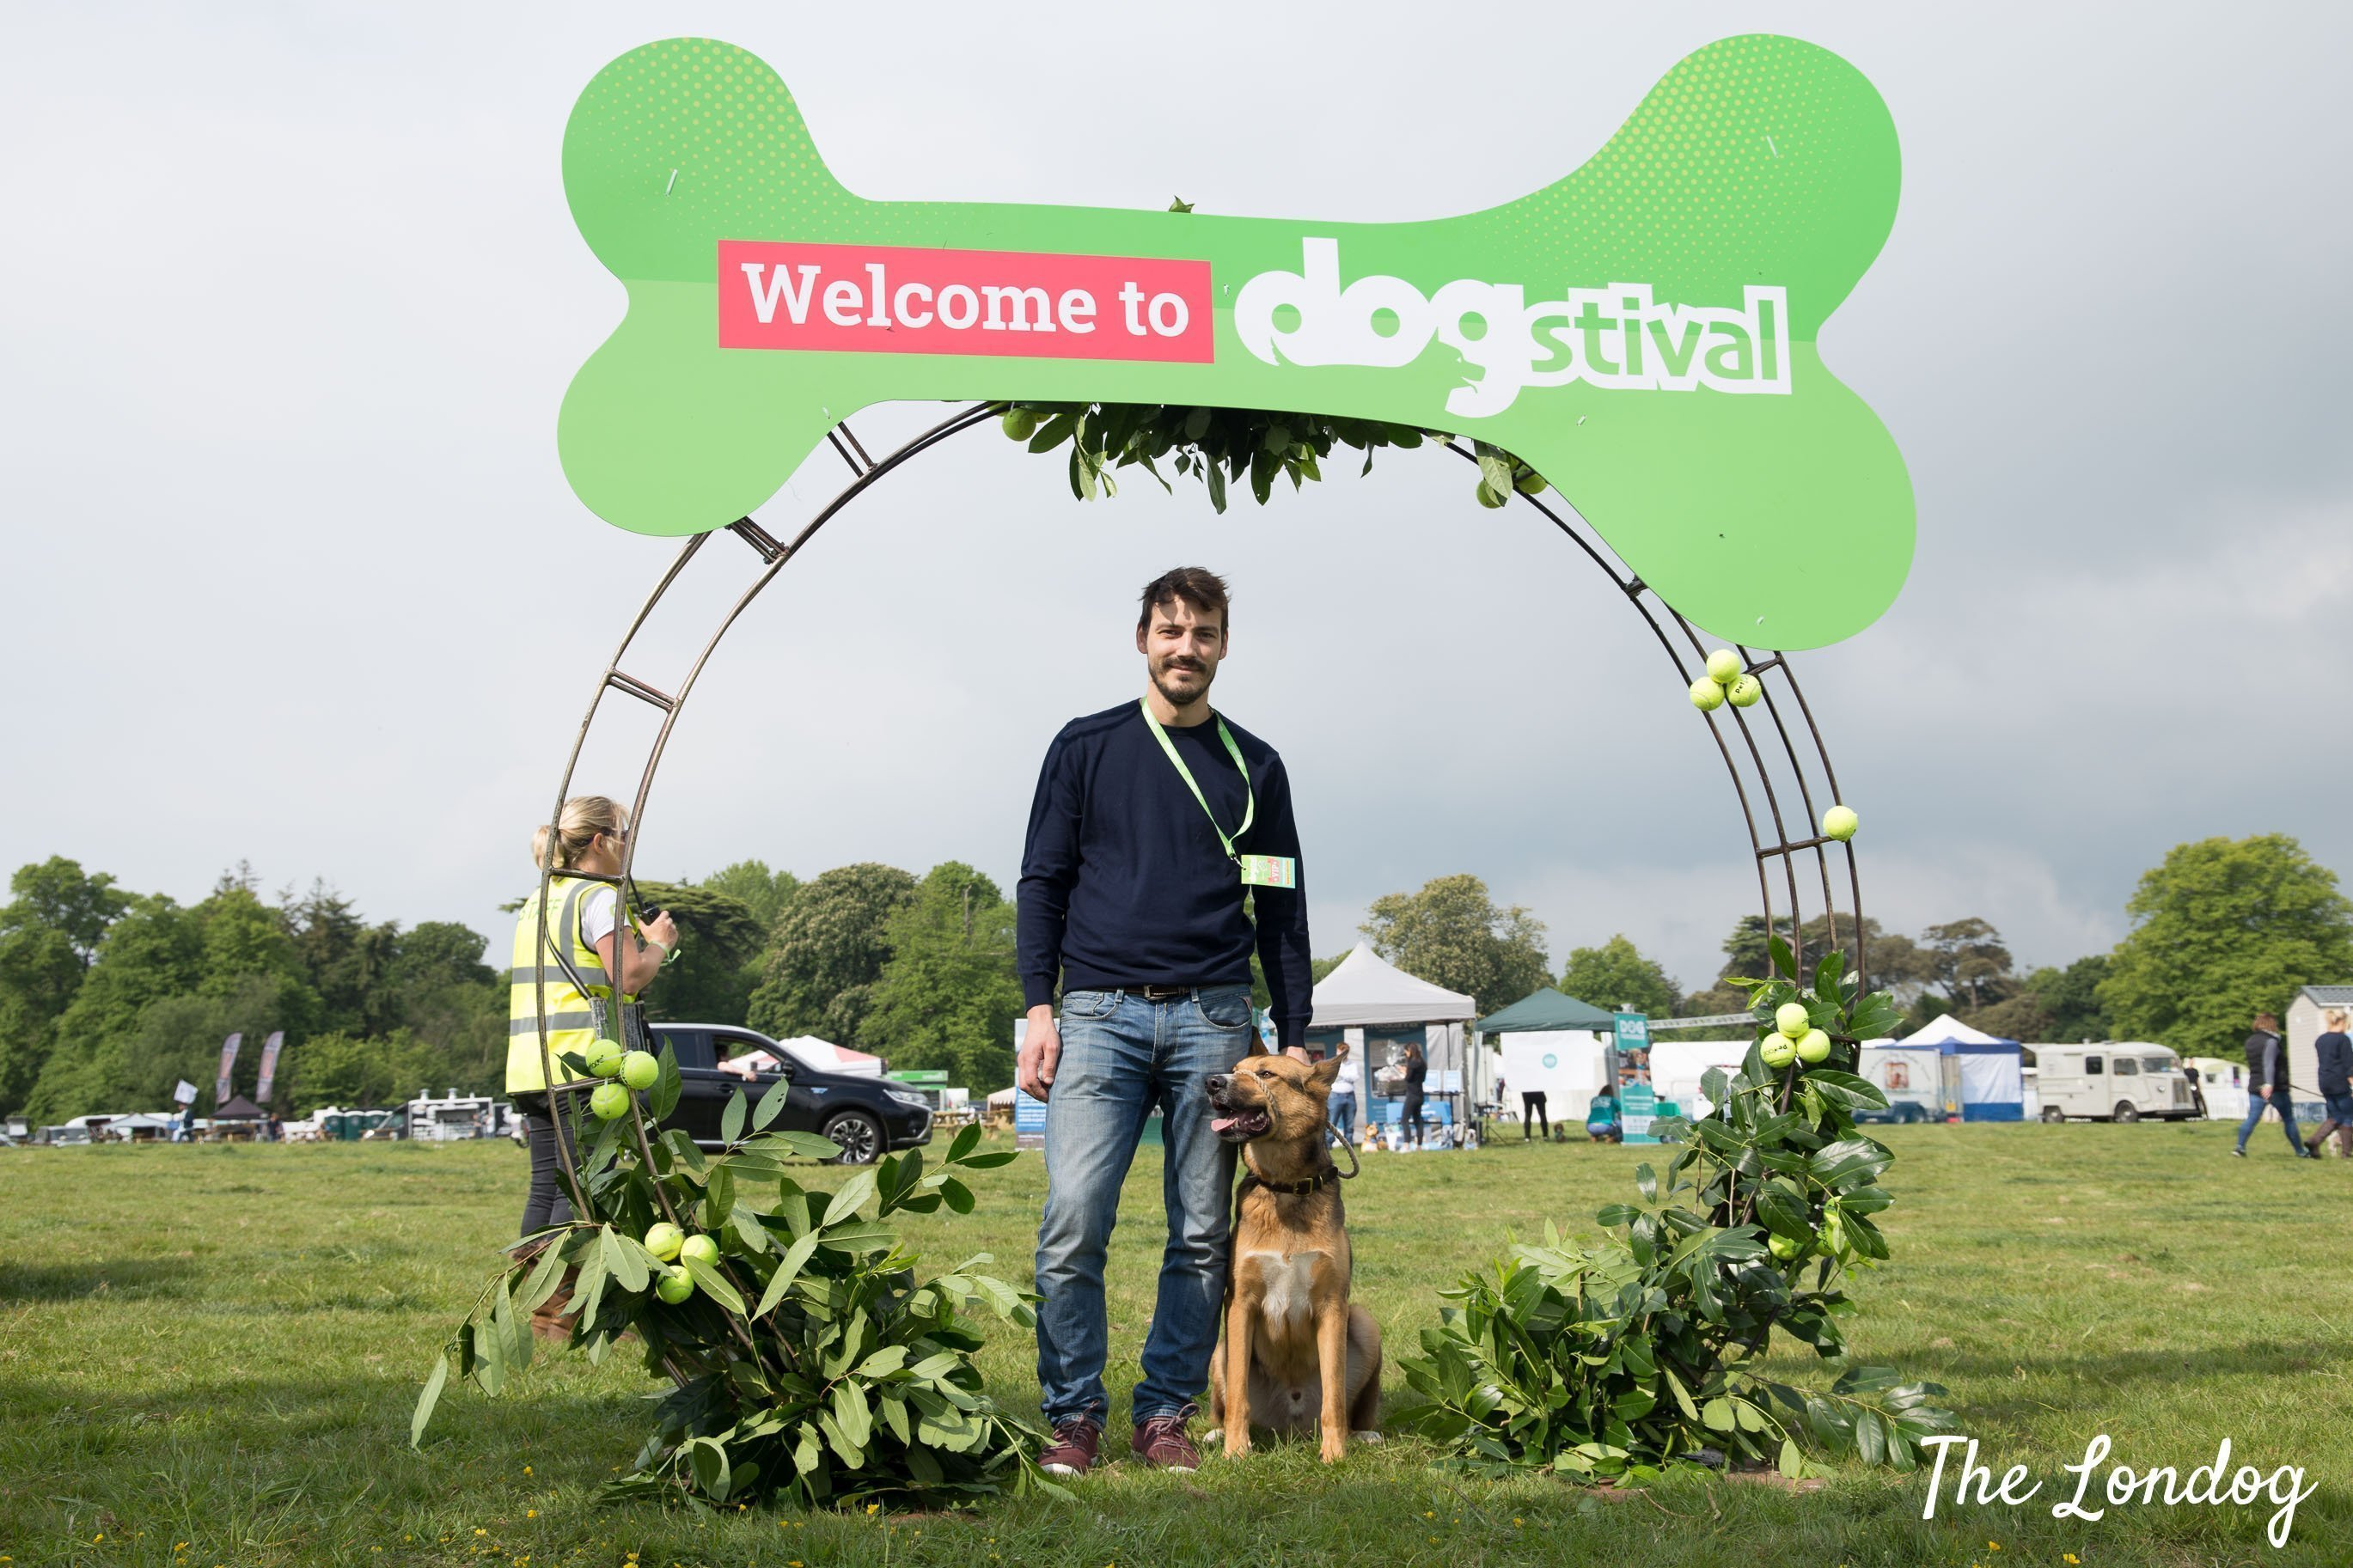 Dog under the entrance arch of the Dogstival